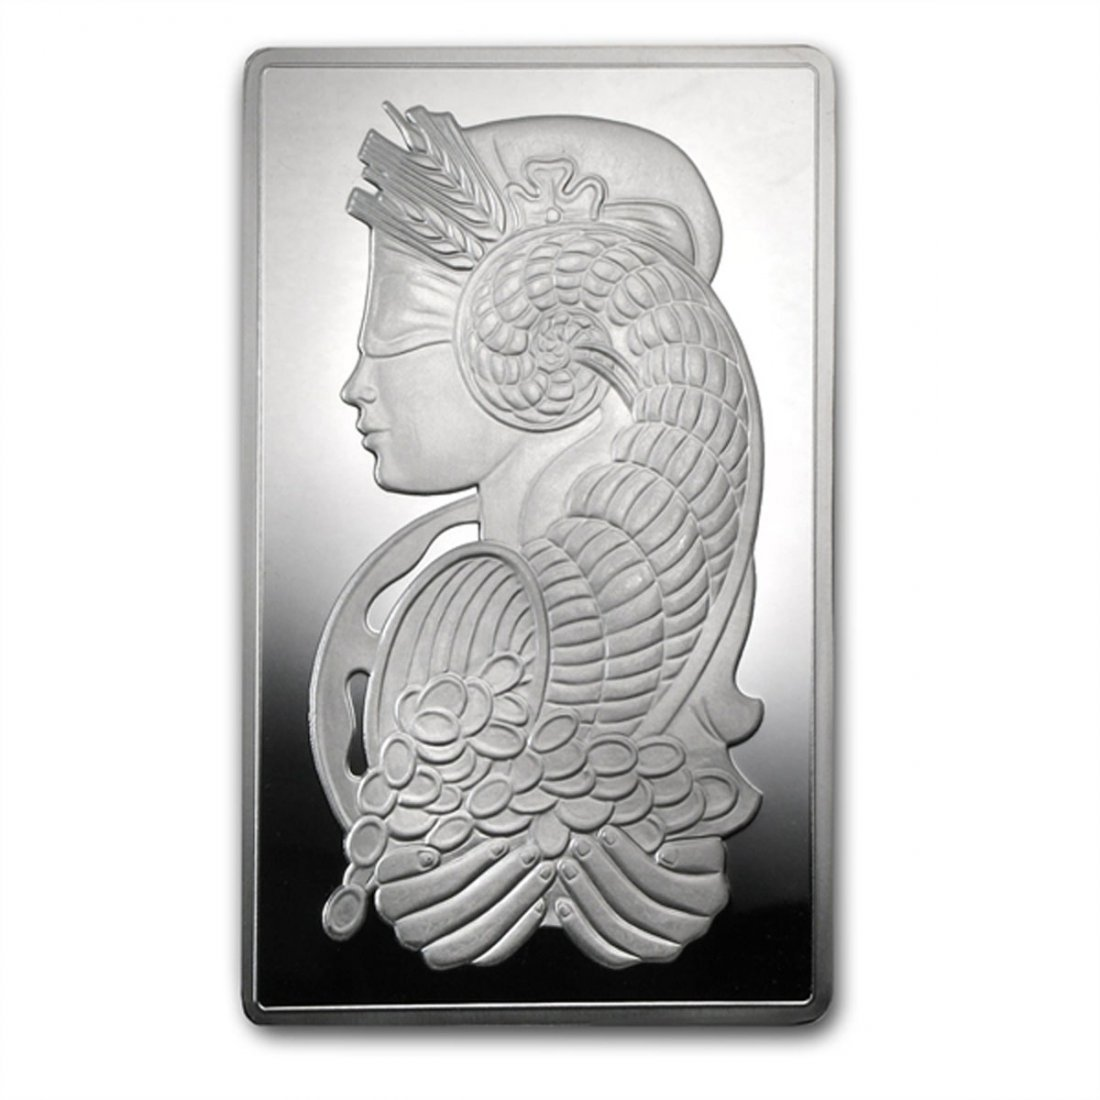 5 oz Pamp Suisse Silver Bar - Fortuna (In Assay) .999